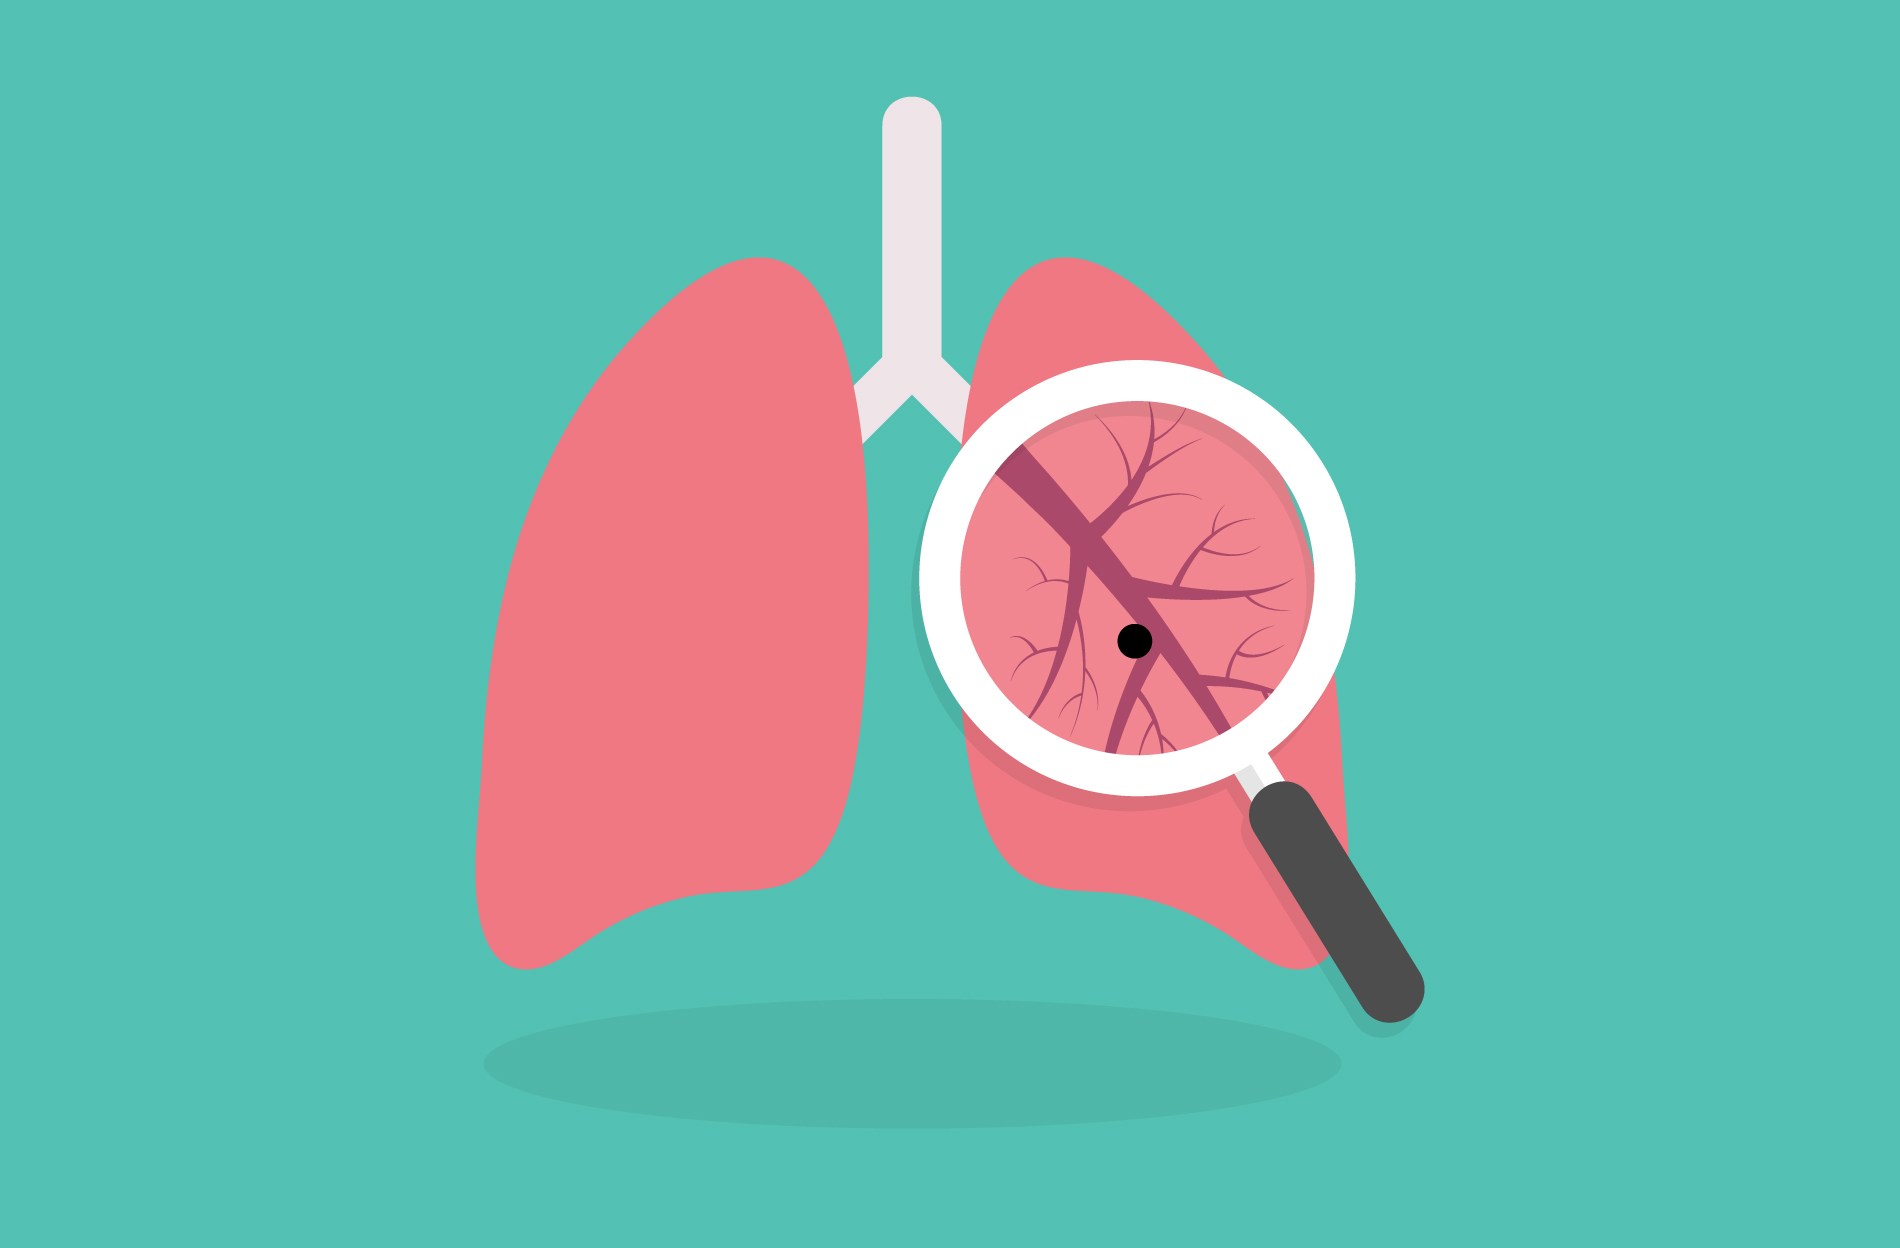 Illustration of magnifying glass looking at lungs